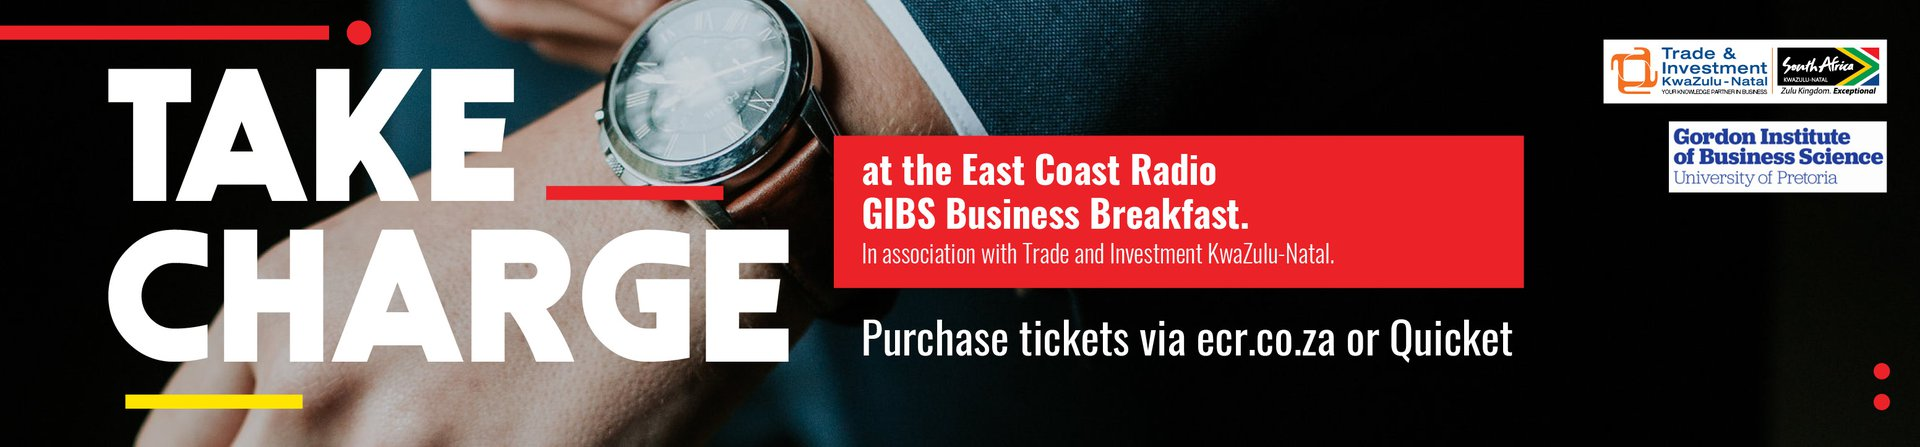 ECR Cover Image for Web_GIBS business breakfast